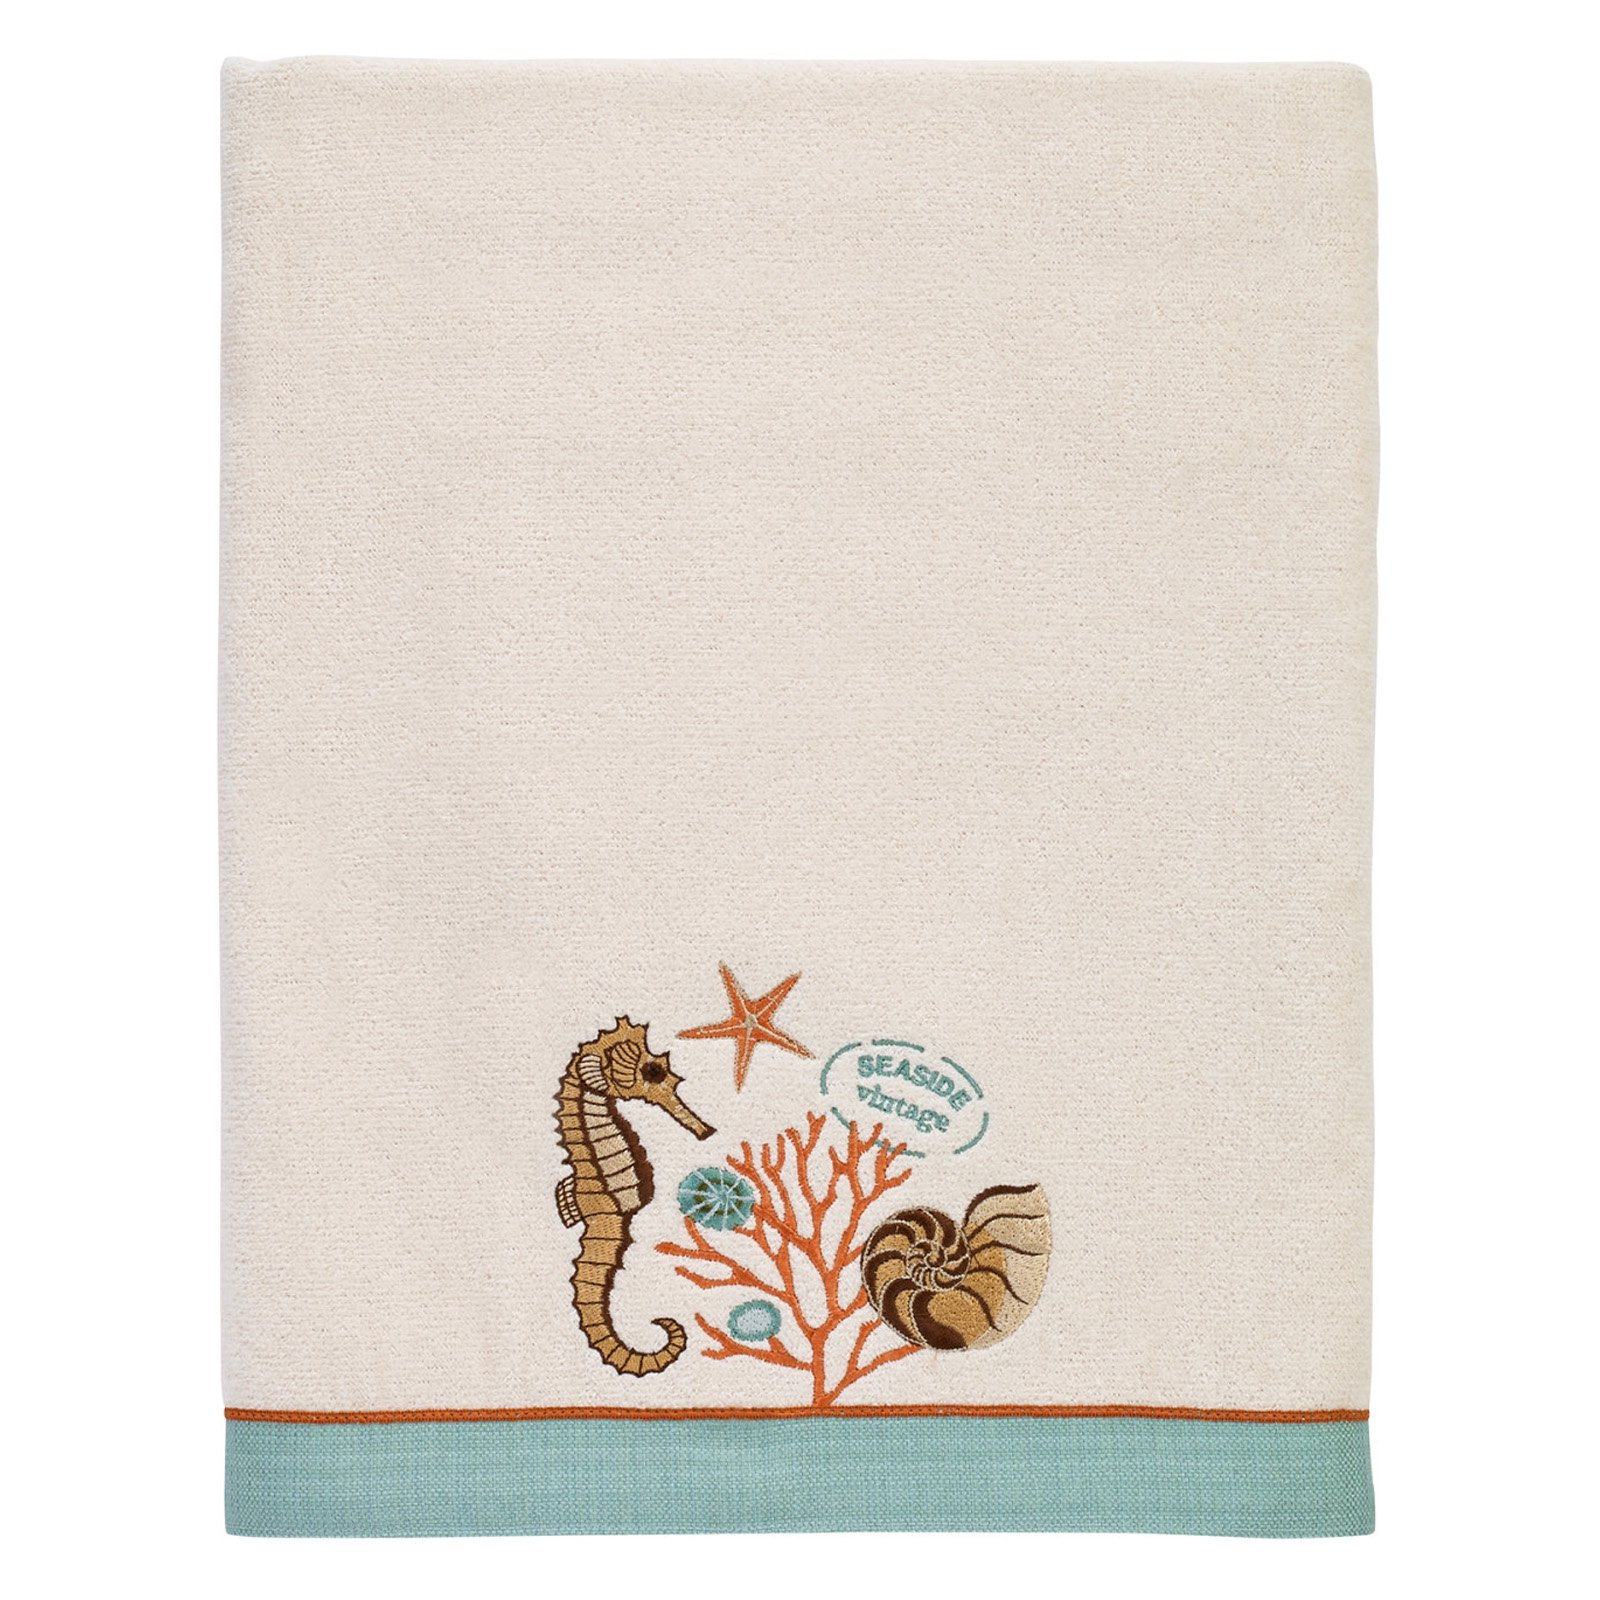 Avanti Seaside Vintage Bath Towel by Avanti Linens Inc